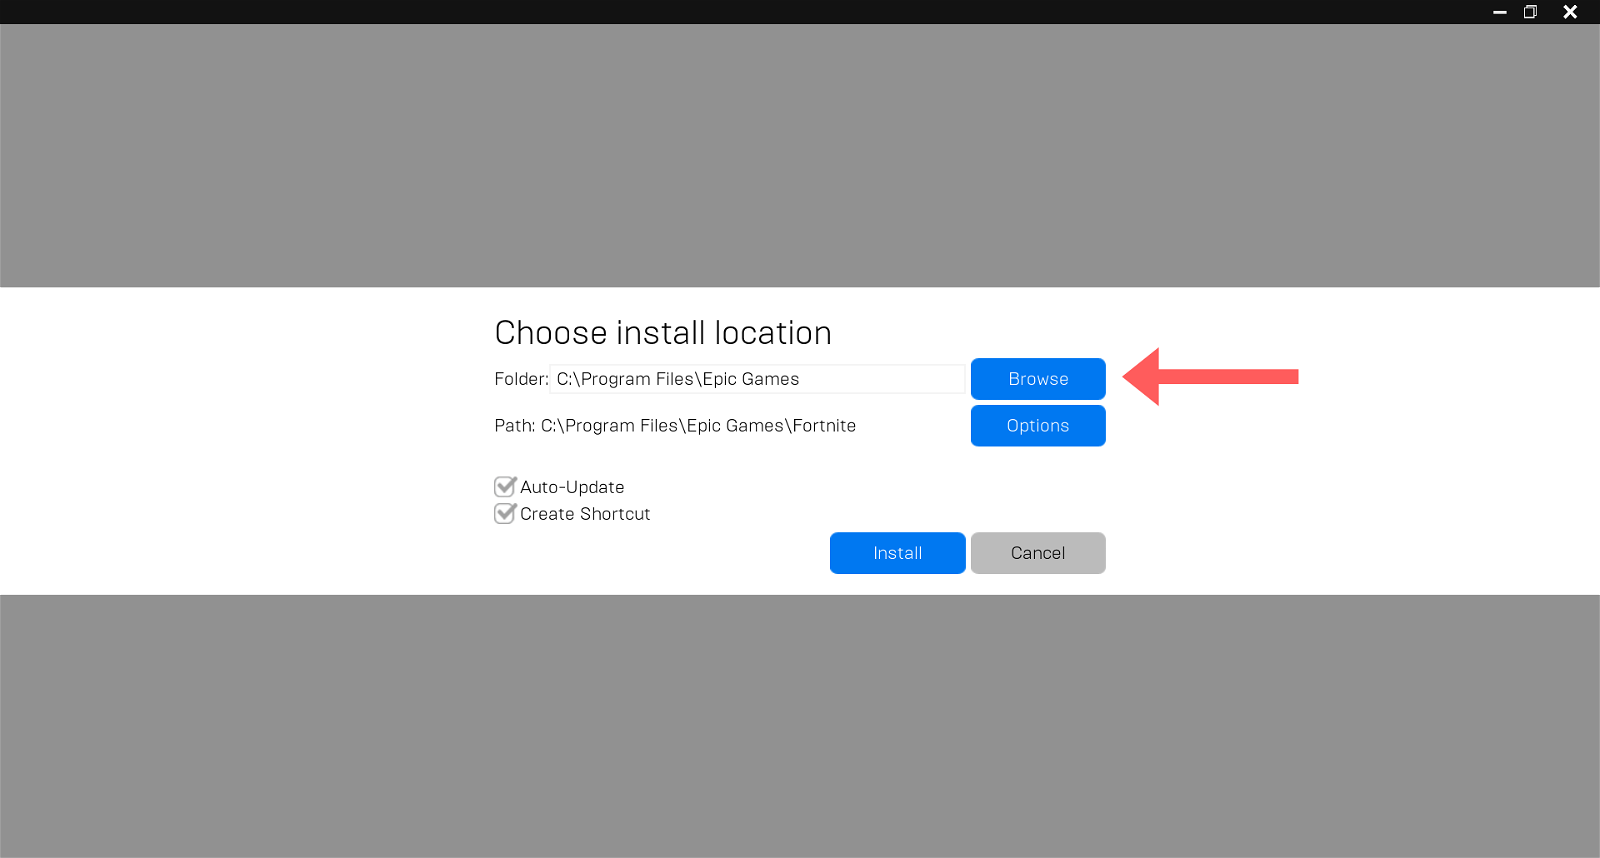 Click Browse on Choose install location